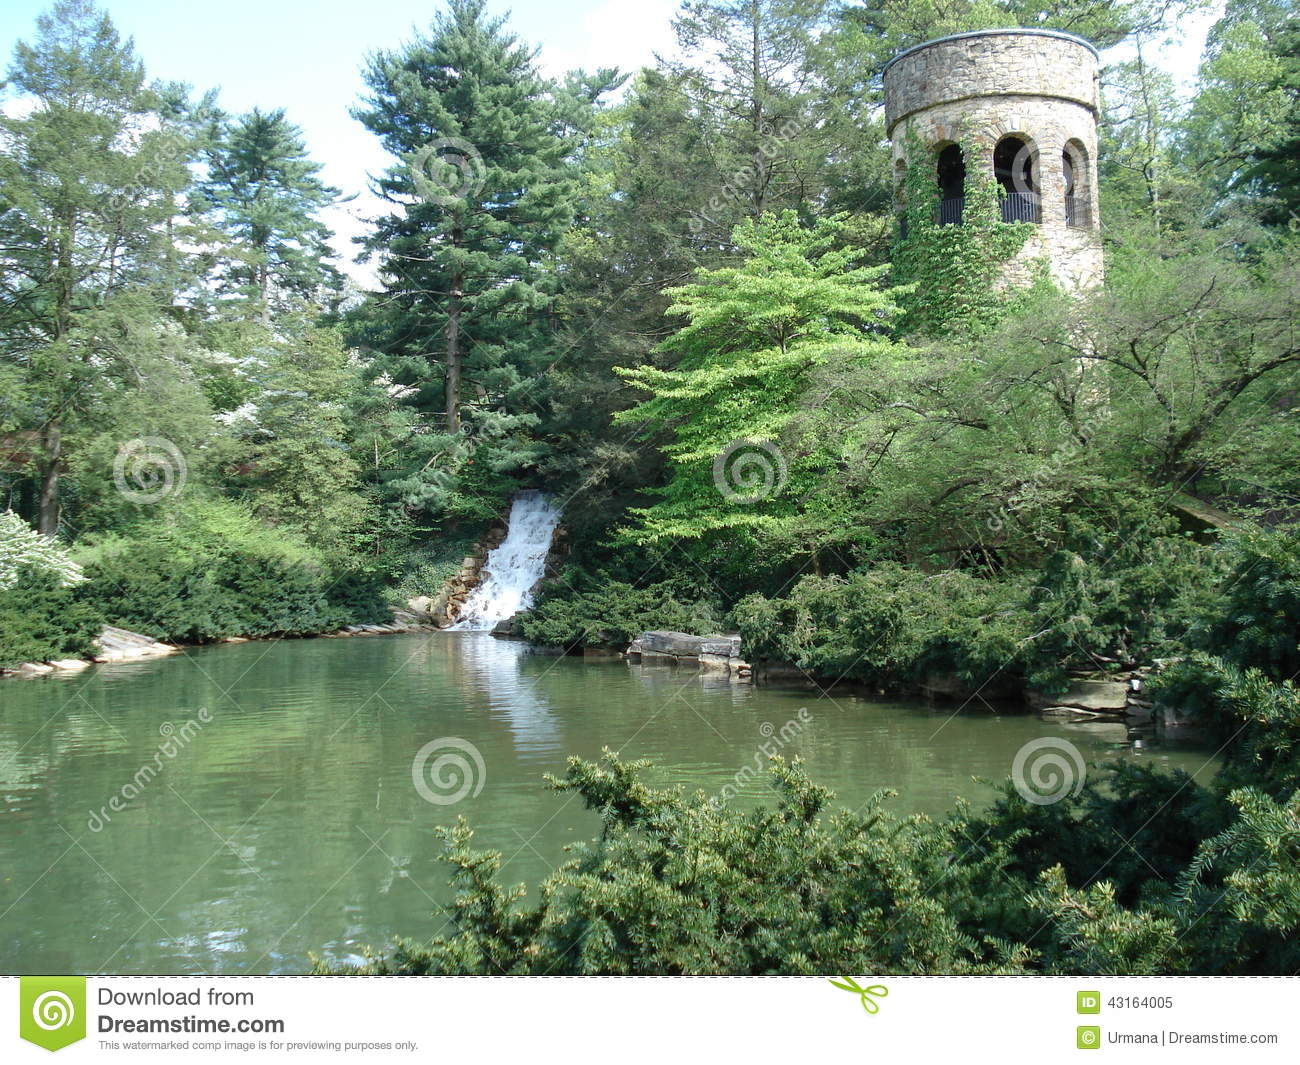 Chimes Tower In Longwood Gardens, Pennsylvania. Stock Photo